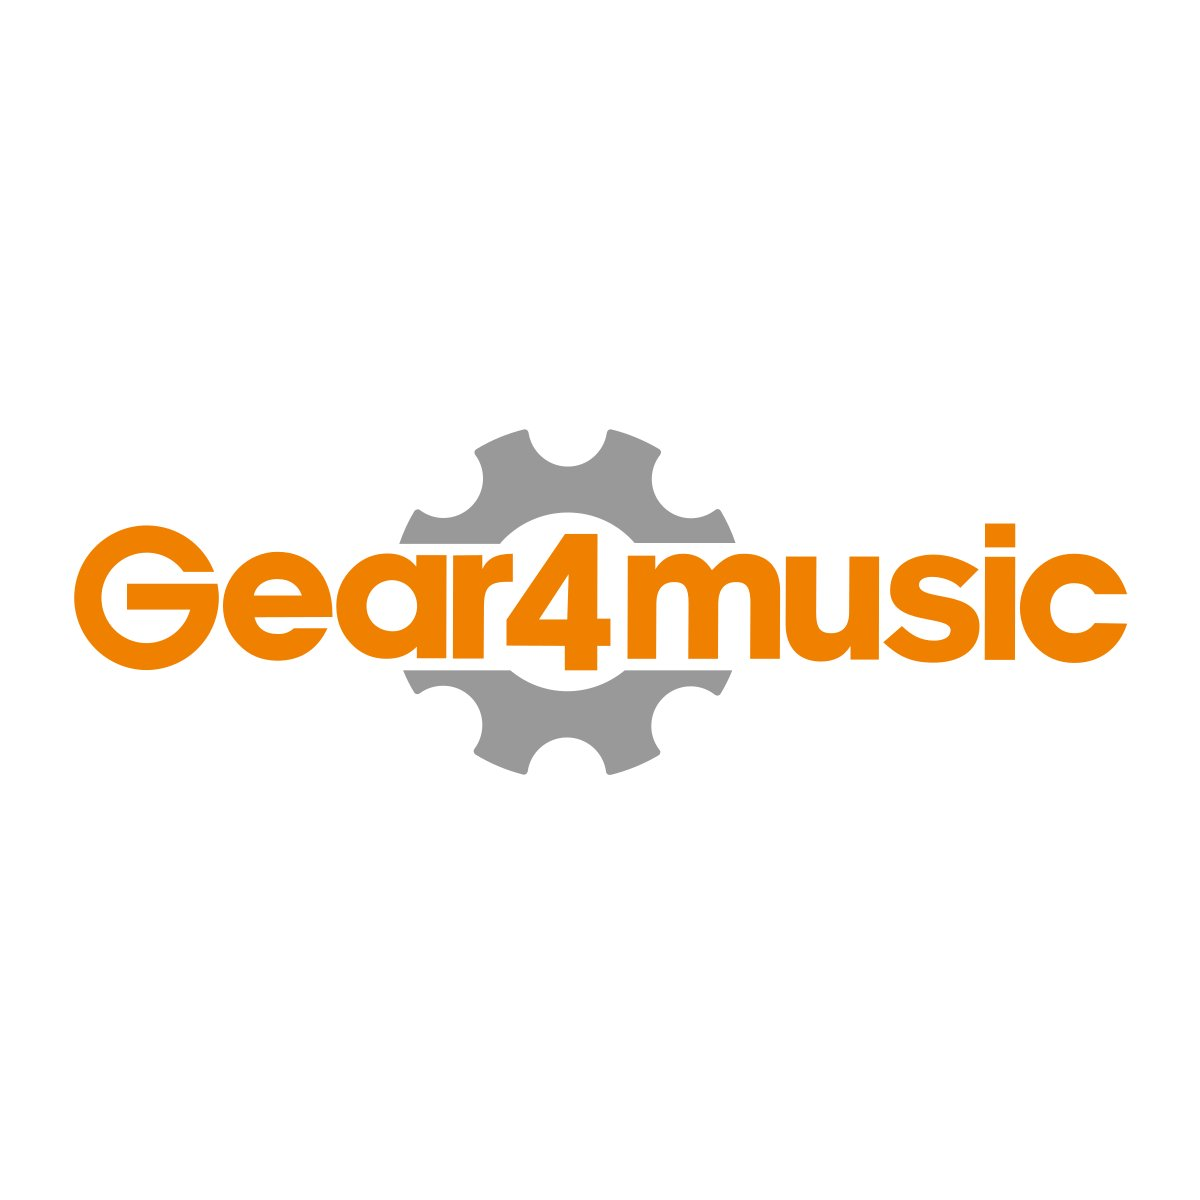 Guitarra Acústica Dreadnought de Gear4music + Accesorios